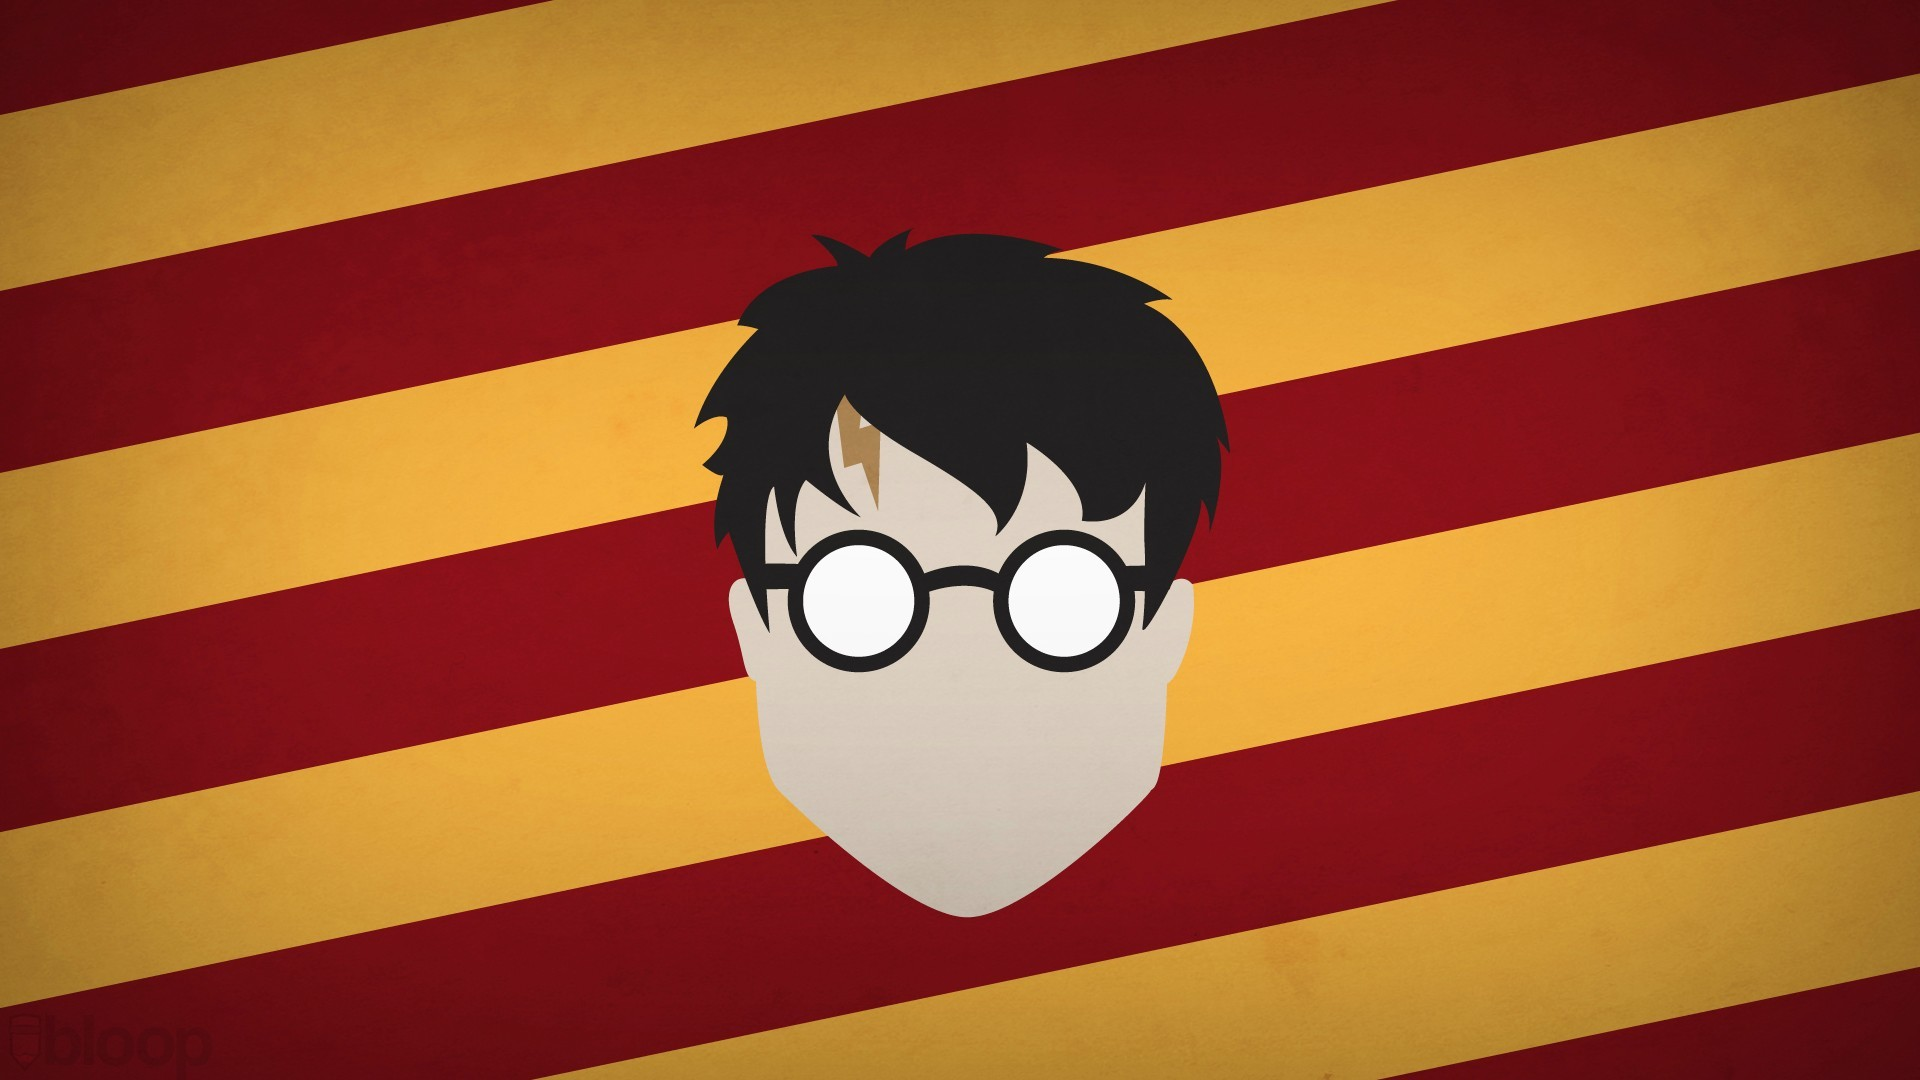 Harry potter art · Wallpapers! Mostly geeky/nerdy stuff nothing too artsy.  – Album on Imgur